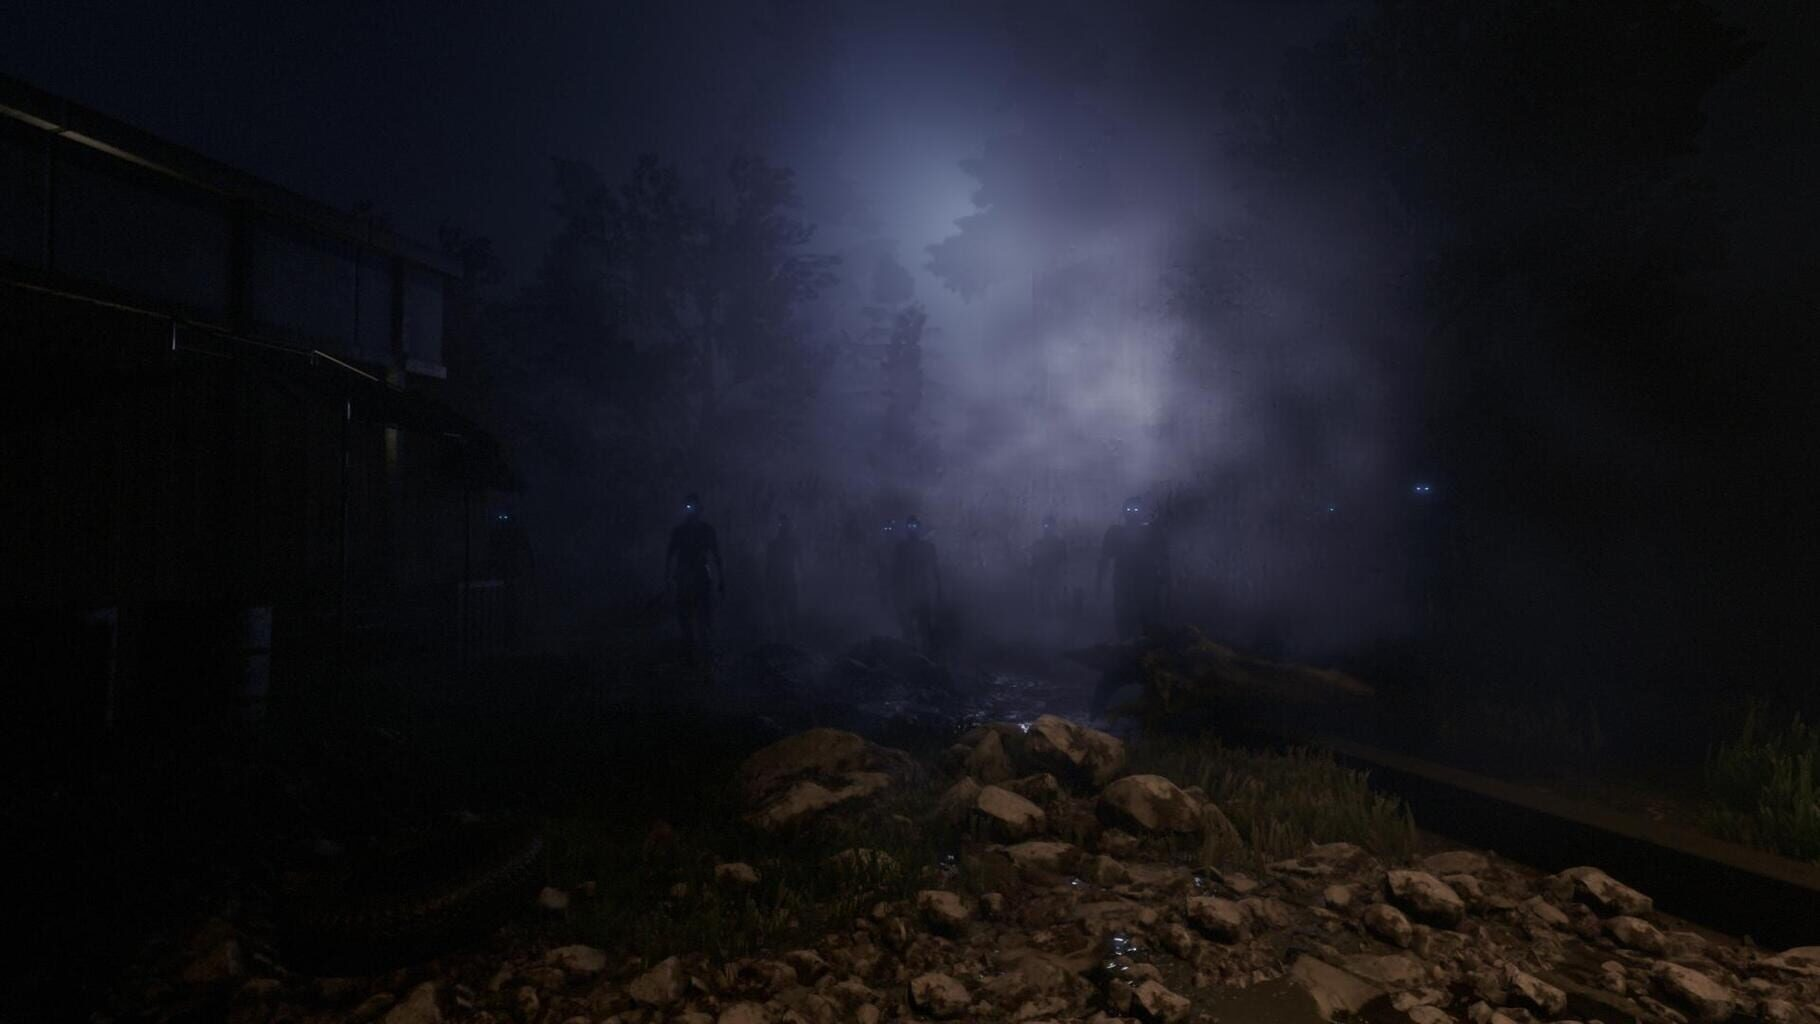 Gameplay Screenshot from Those Who Remain